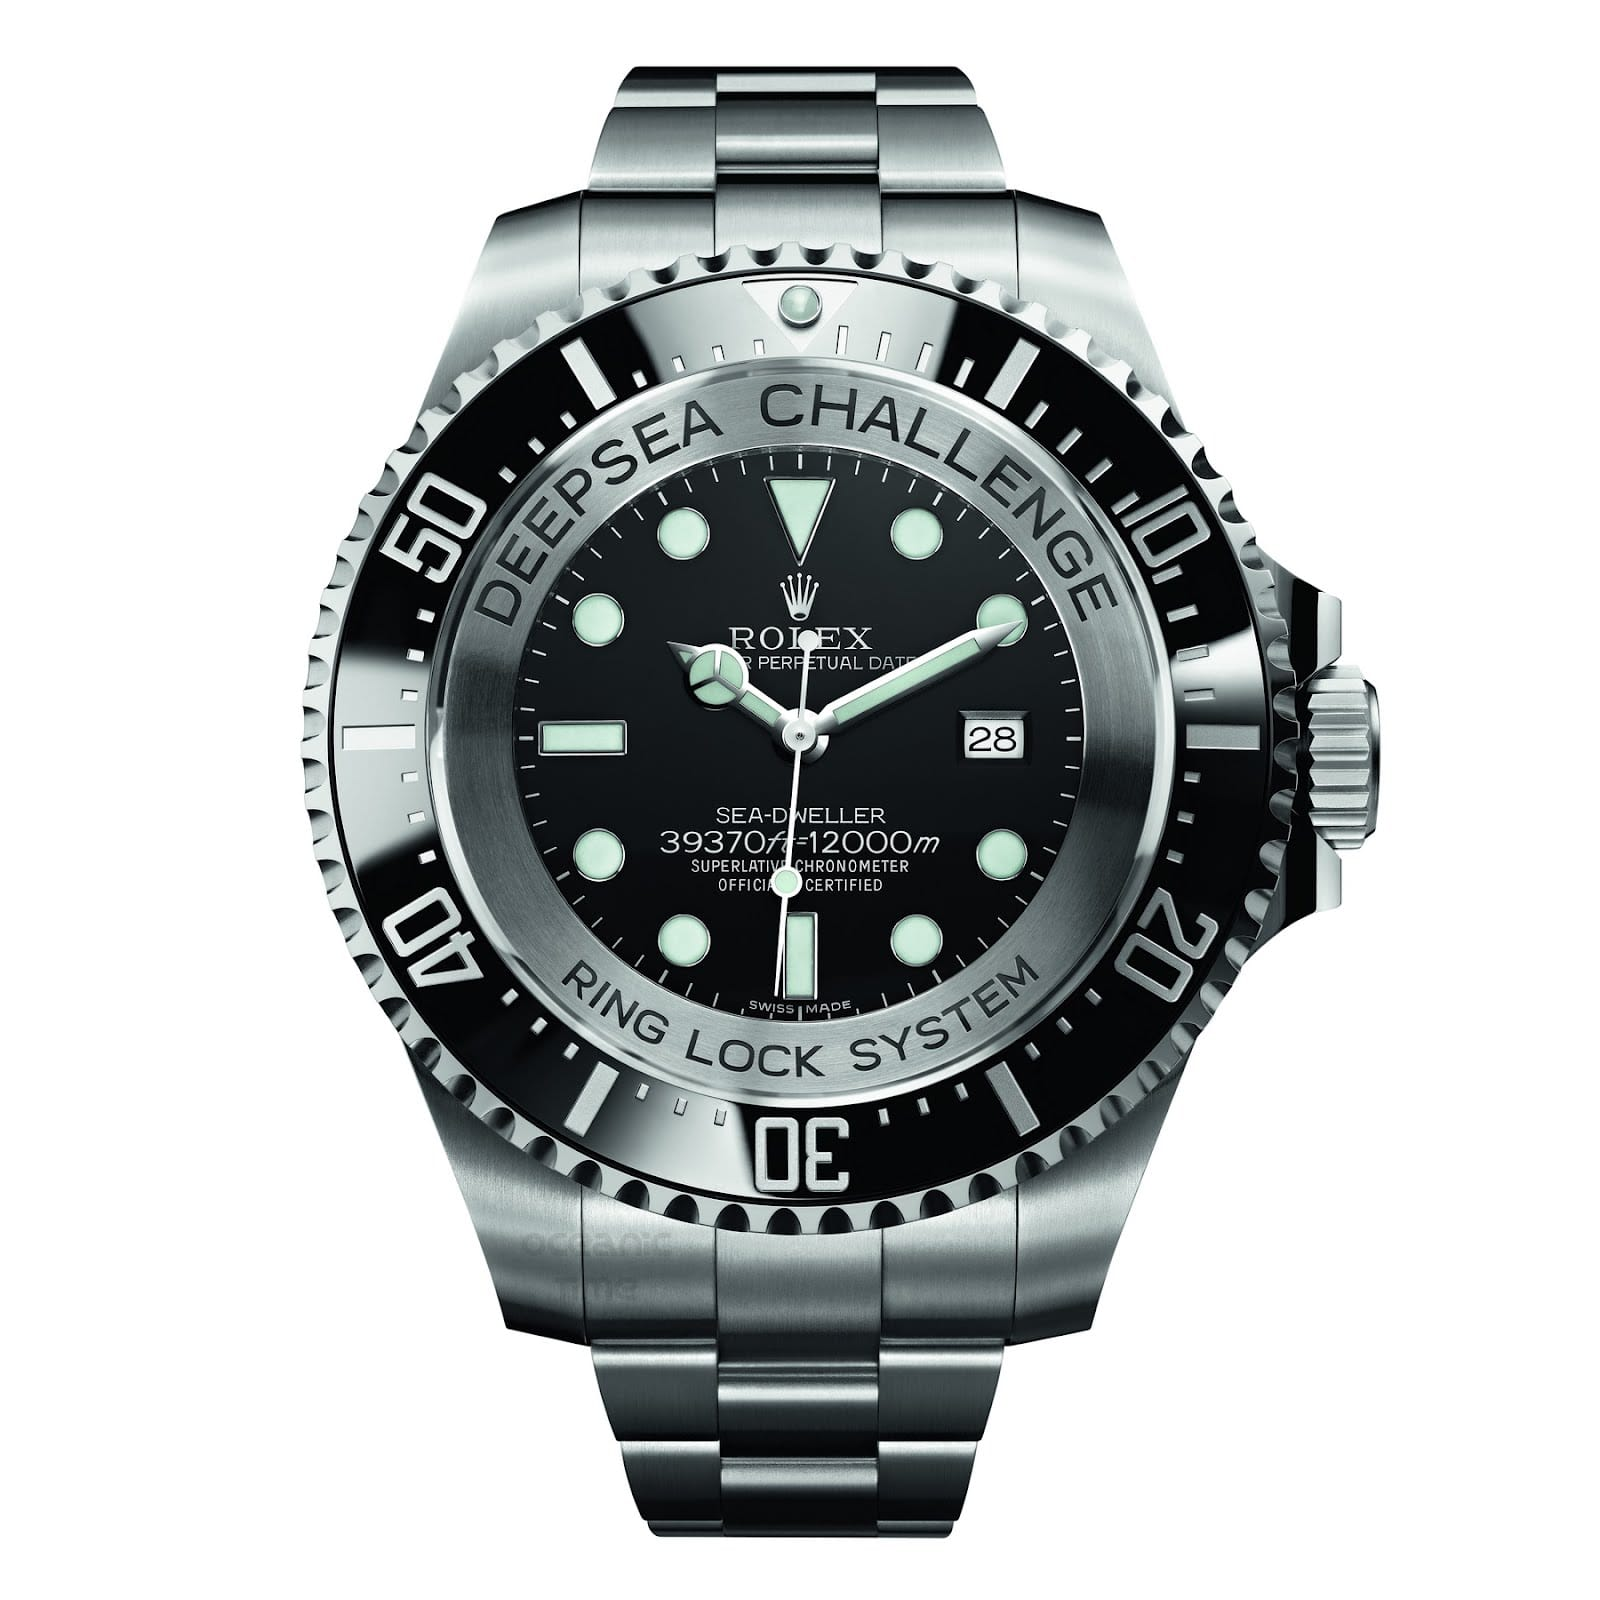 Rolex Sea Dweller Deepsea Challenge from Bob's Watches.